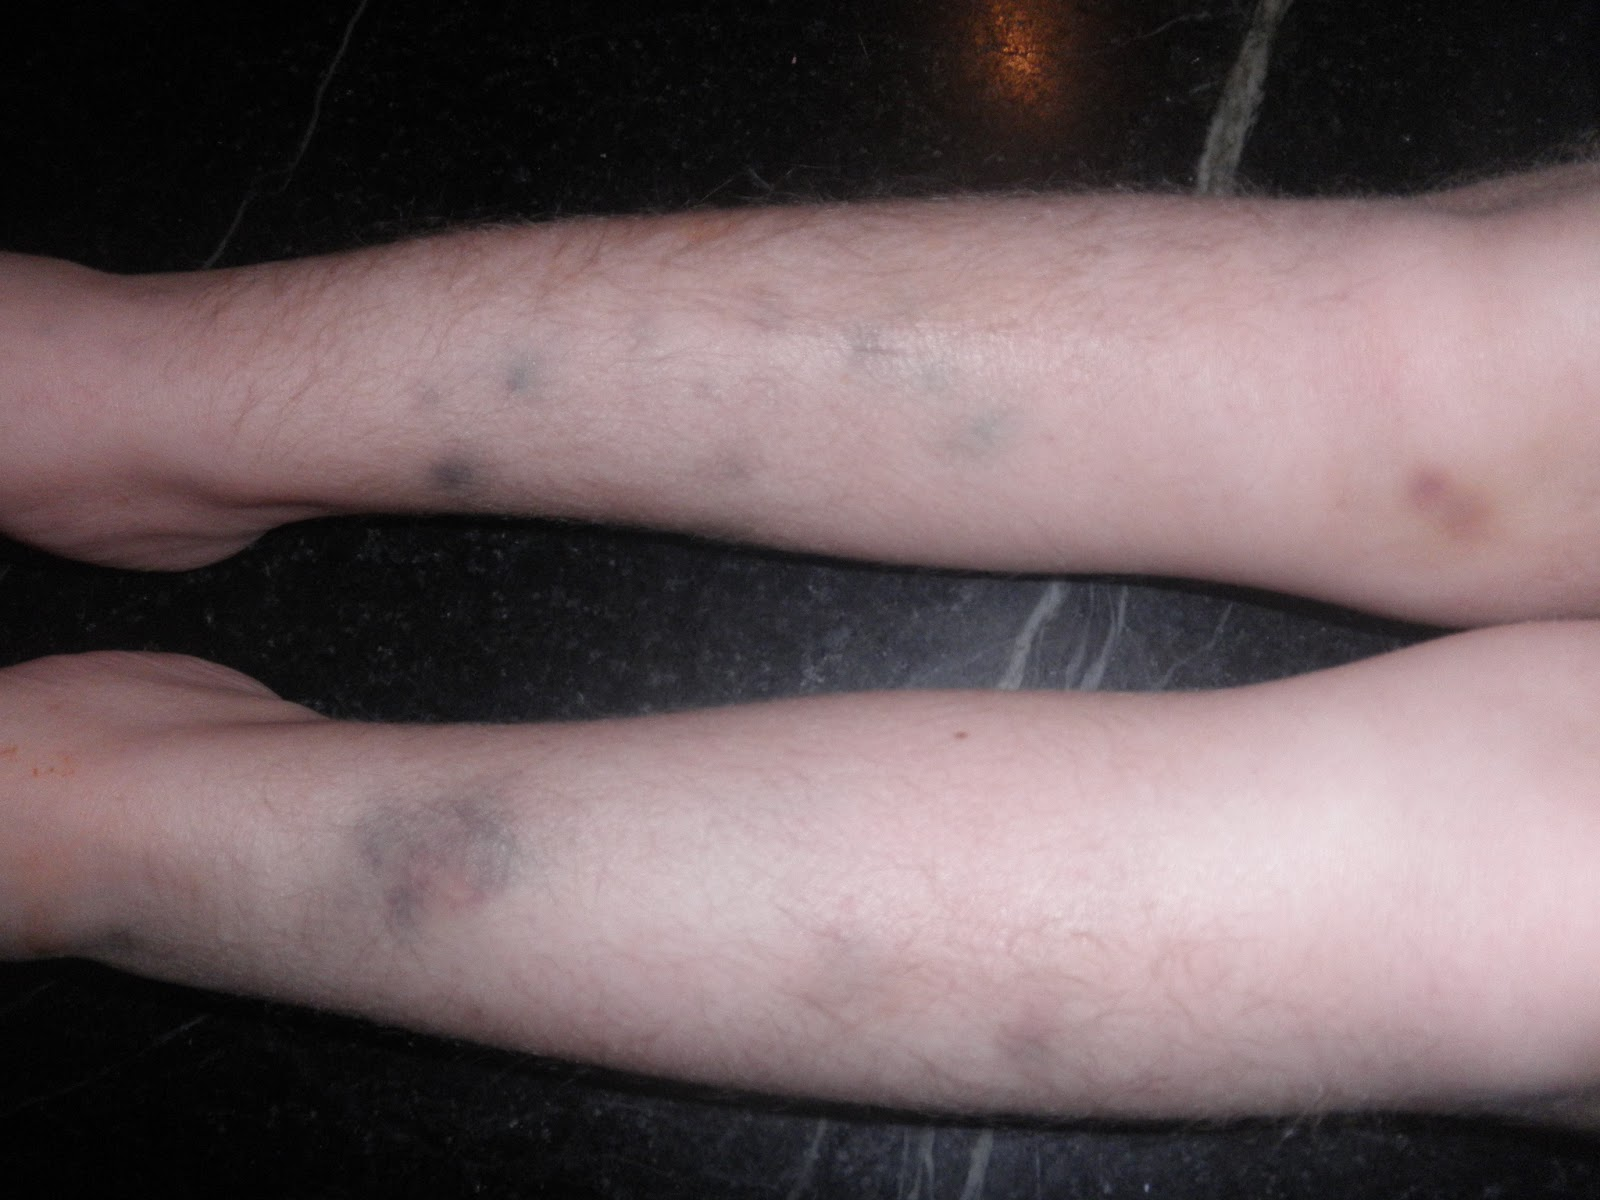 Images of Arm Bruises For No Reason - #rock-cafe